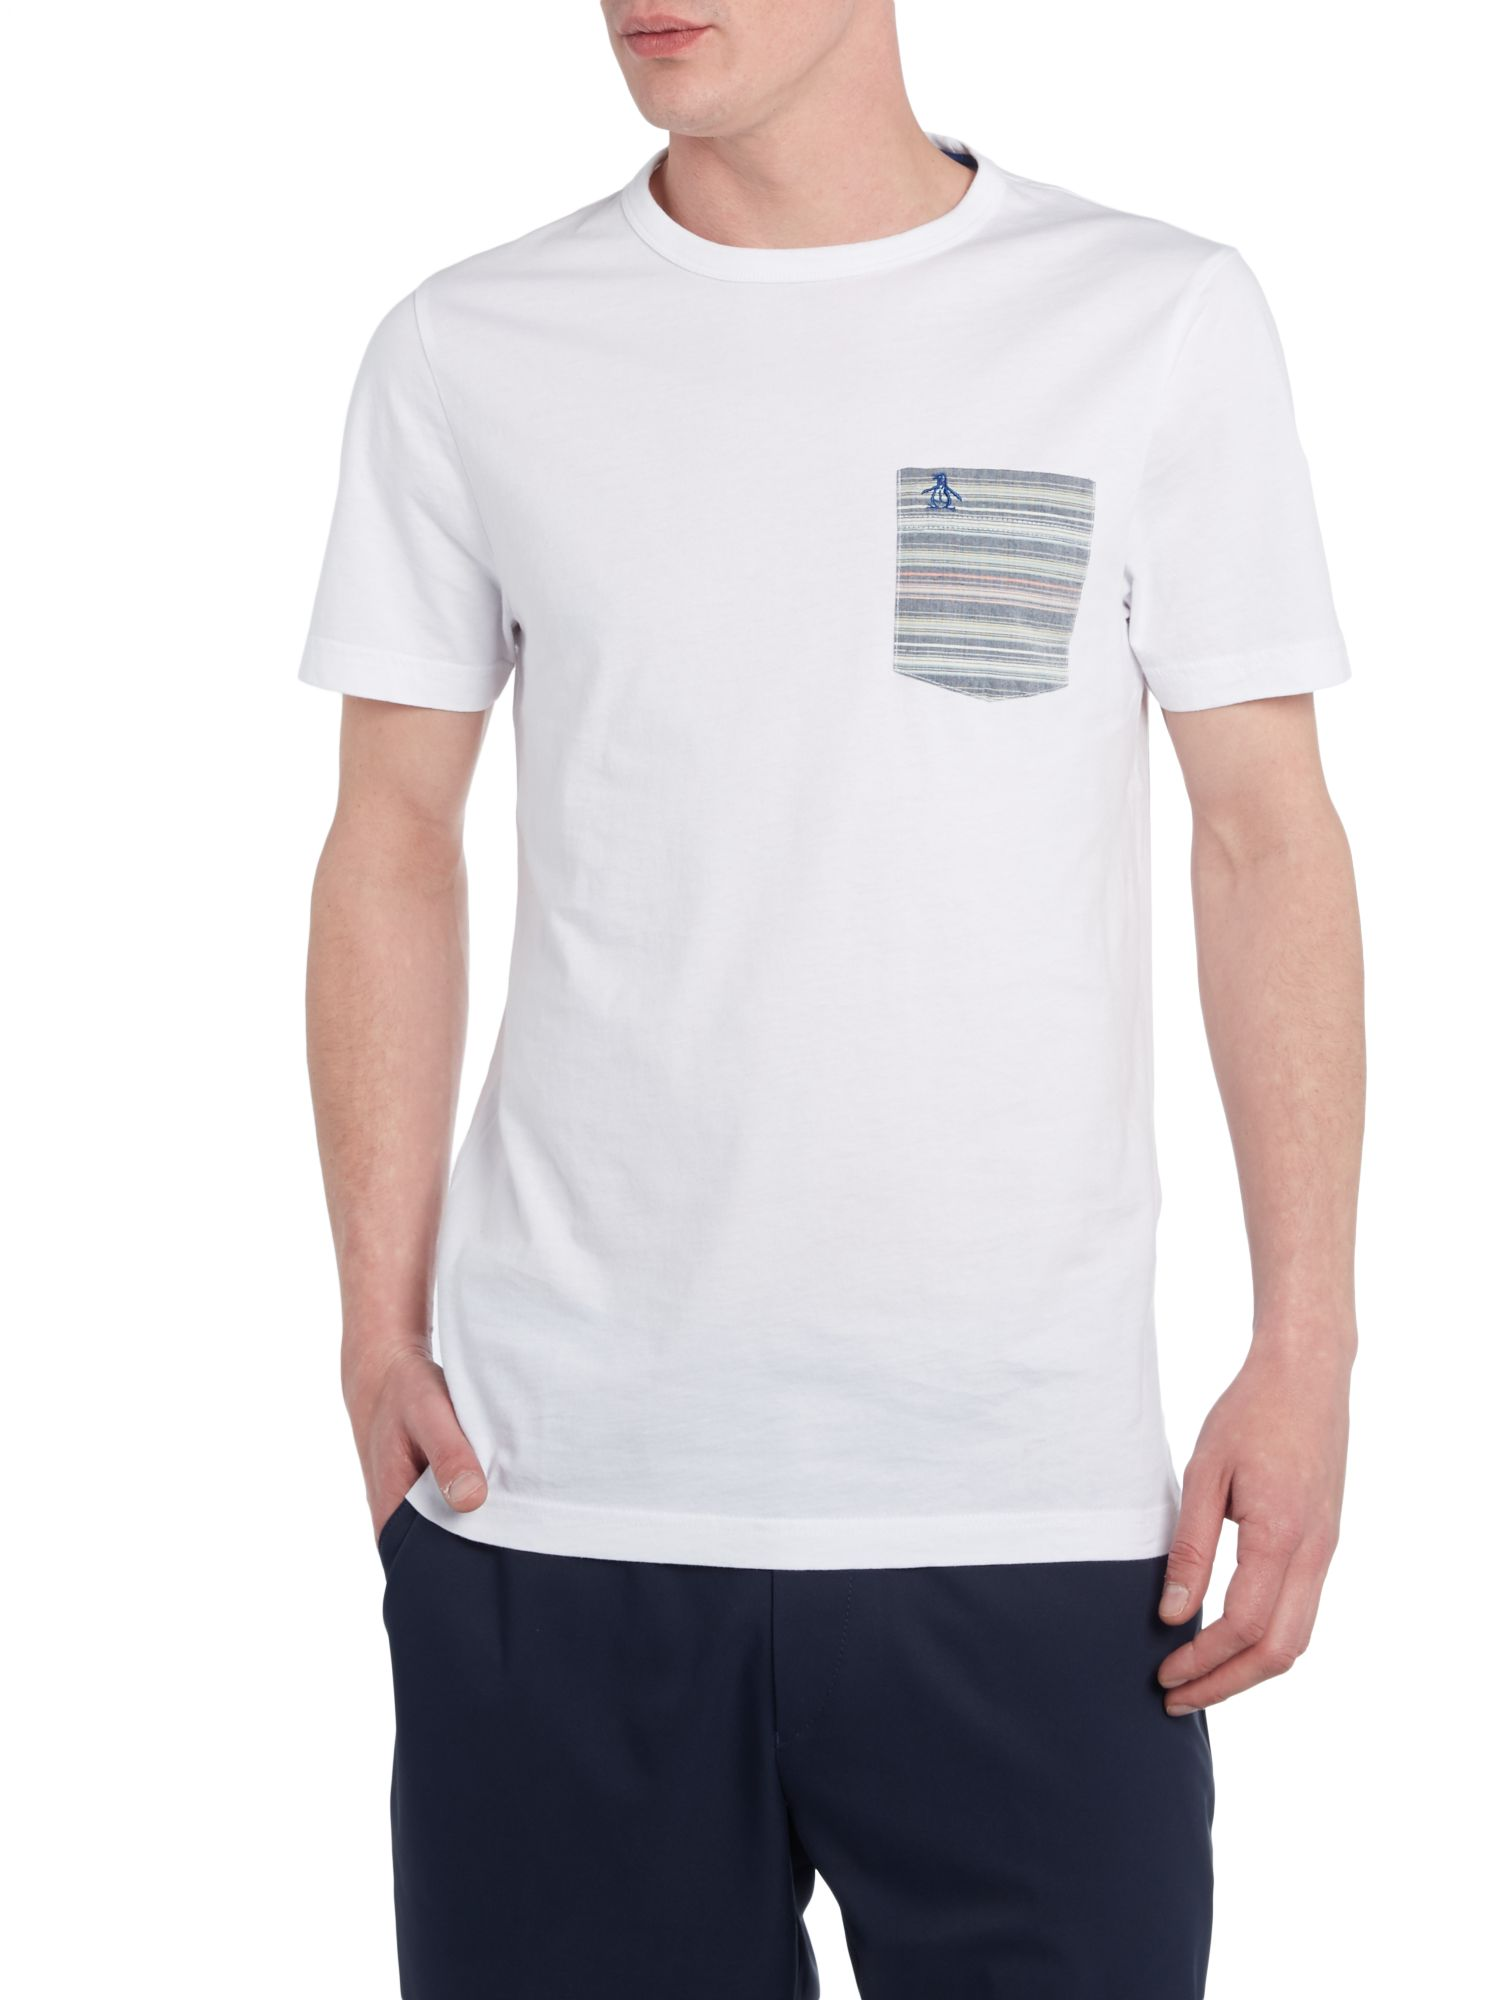 Stripey contrast pocket t shirt